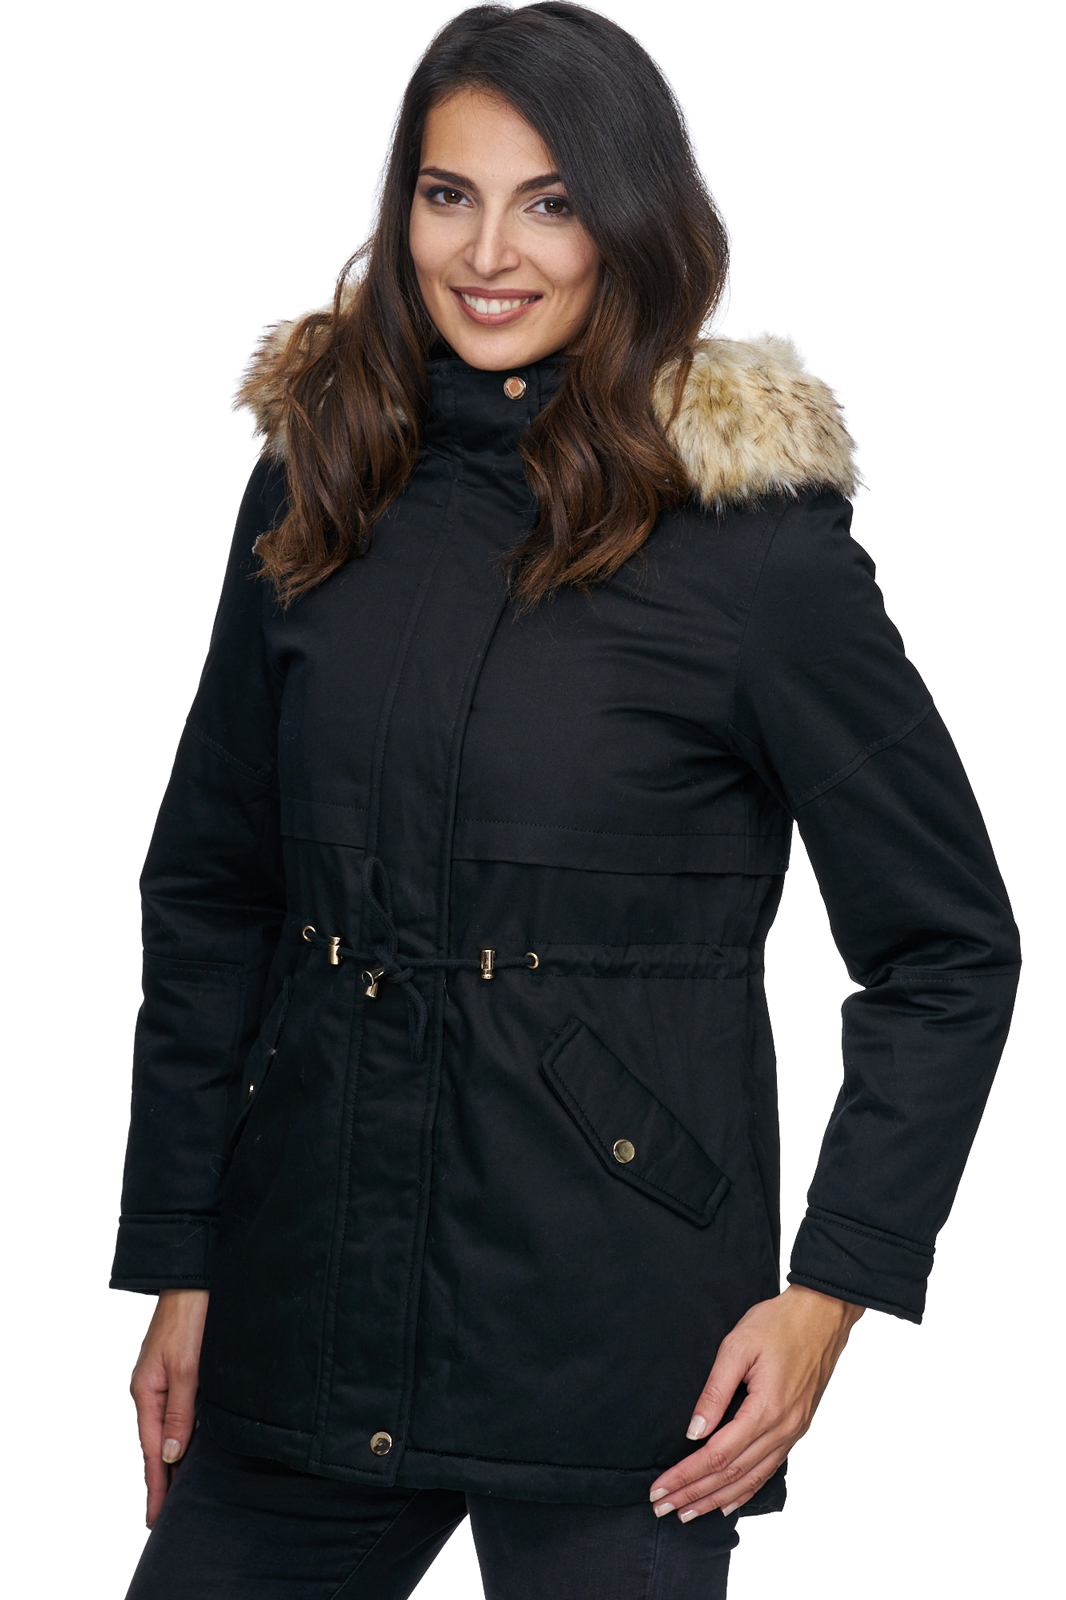 designer damen winterjacke parka warm mantel winter jacke. Black Bedroom Furniture Sets. Home Design Ideas